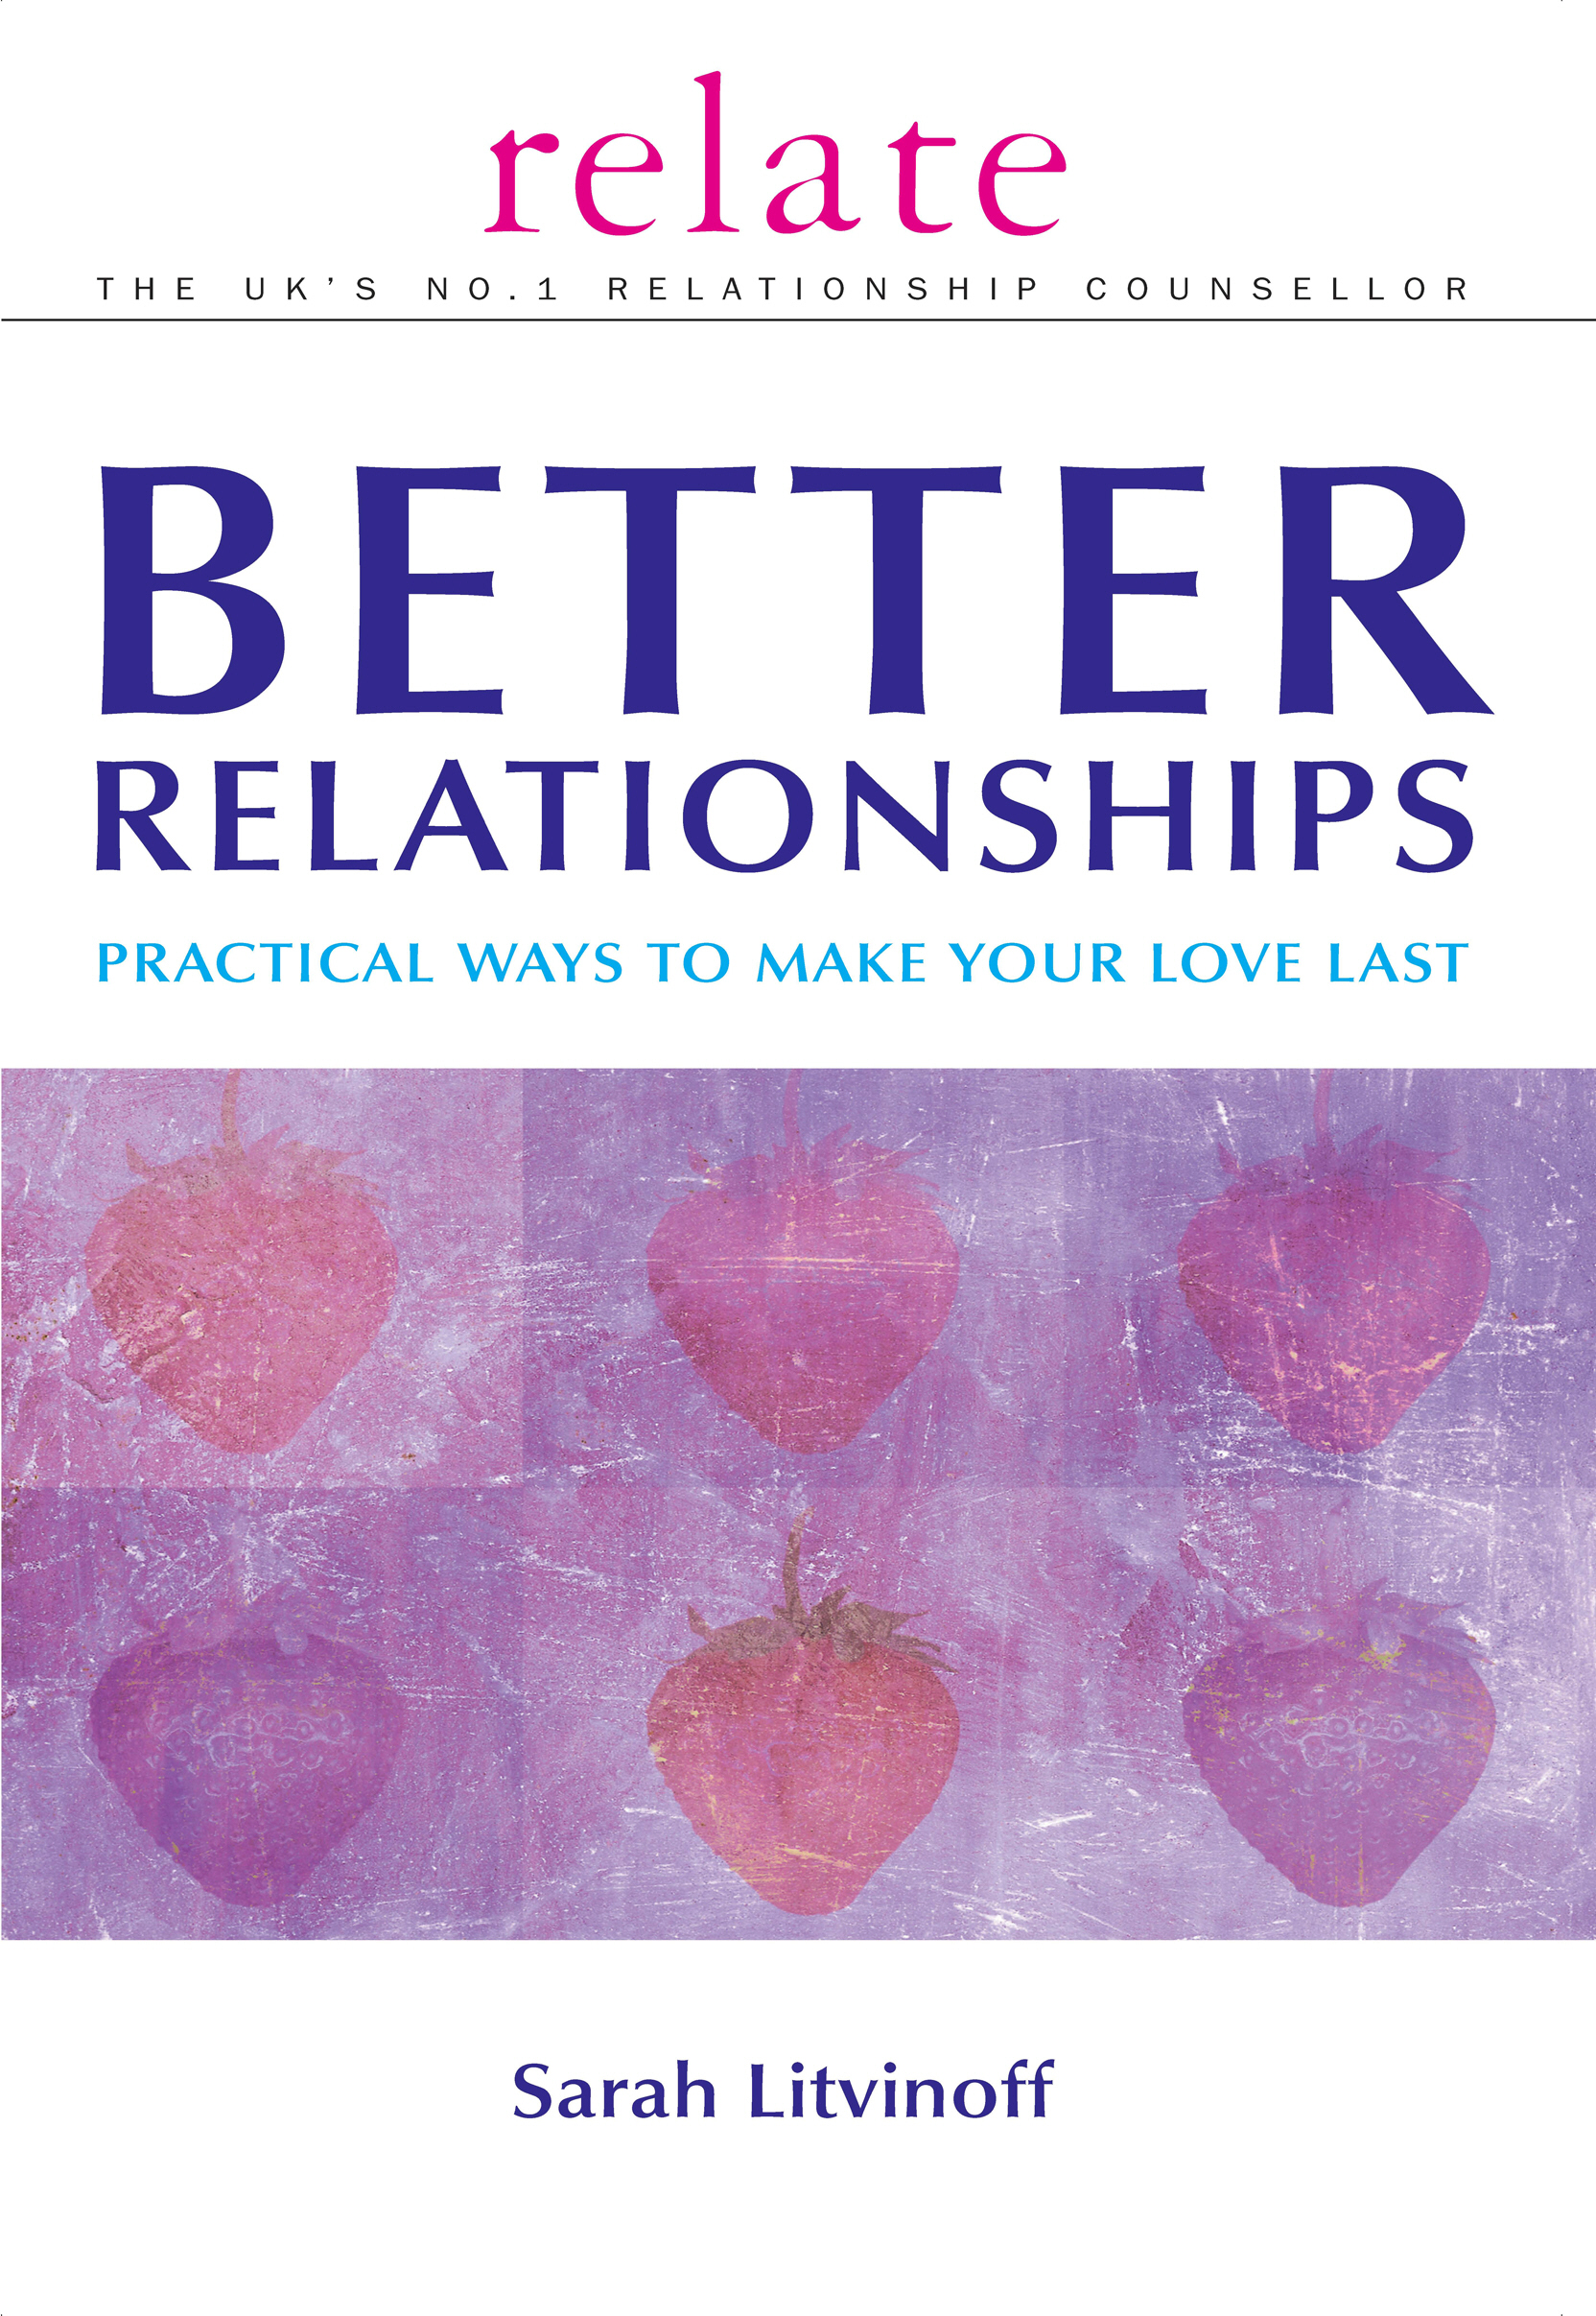 The Relate Guide To Better Relationships Practical Ways to Make Your Love Last From the Experts in Marriage Guidance